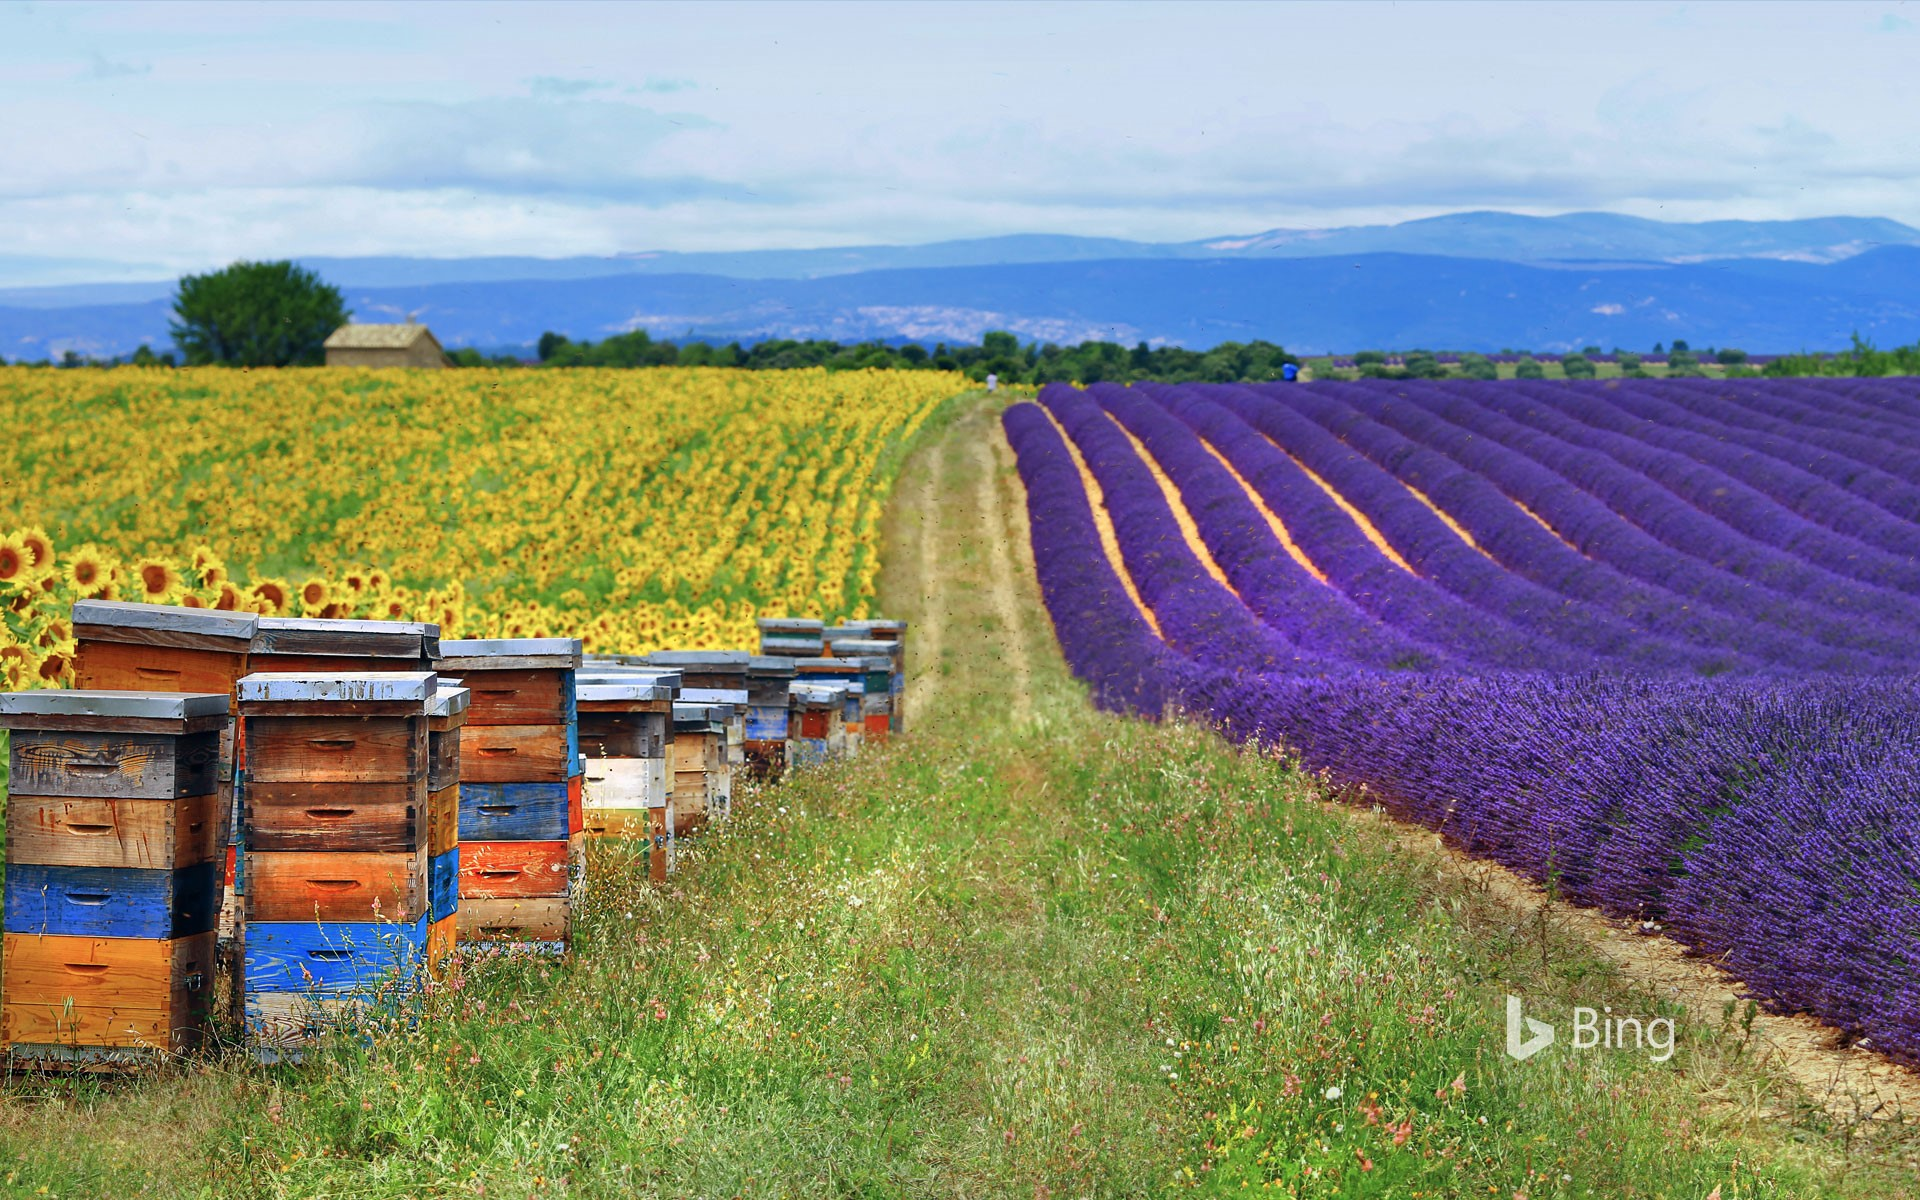 Fields of lavender and sunflowers with beehives in Provence, France